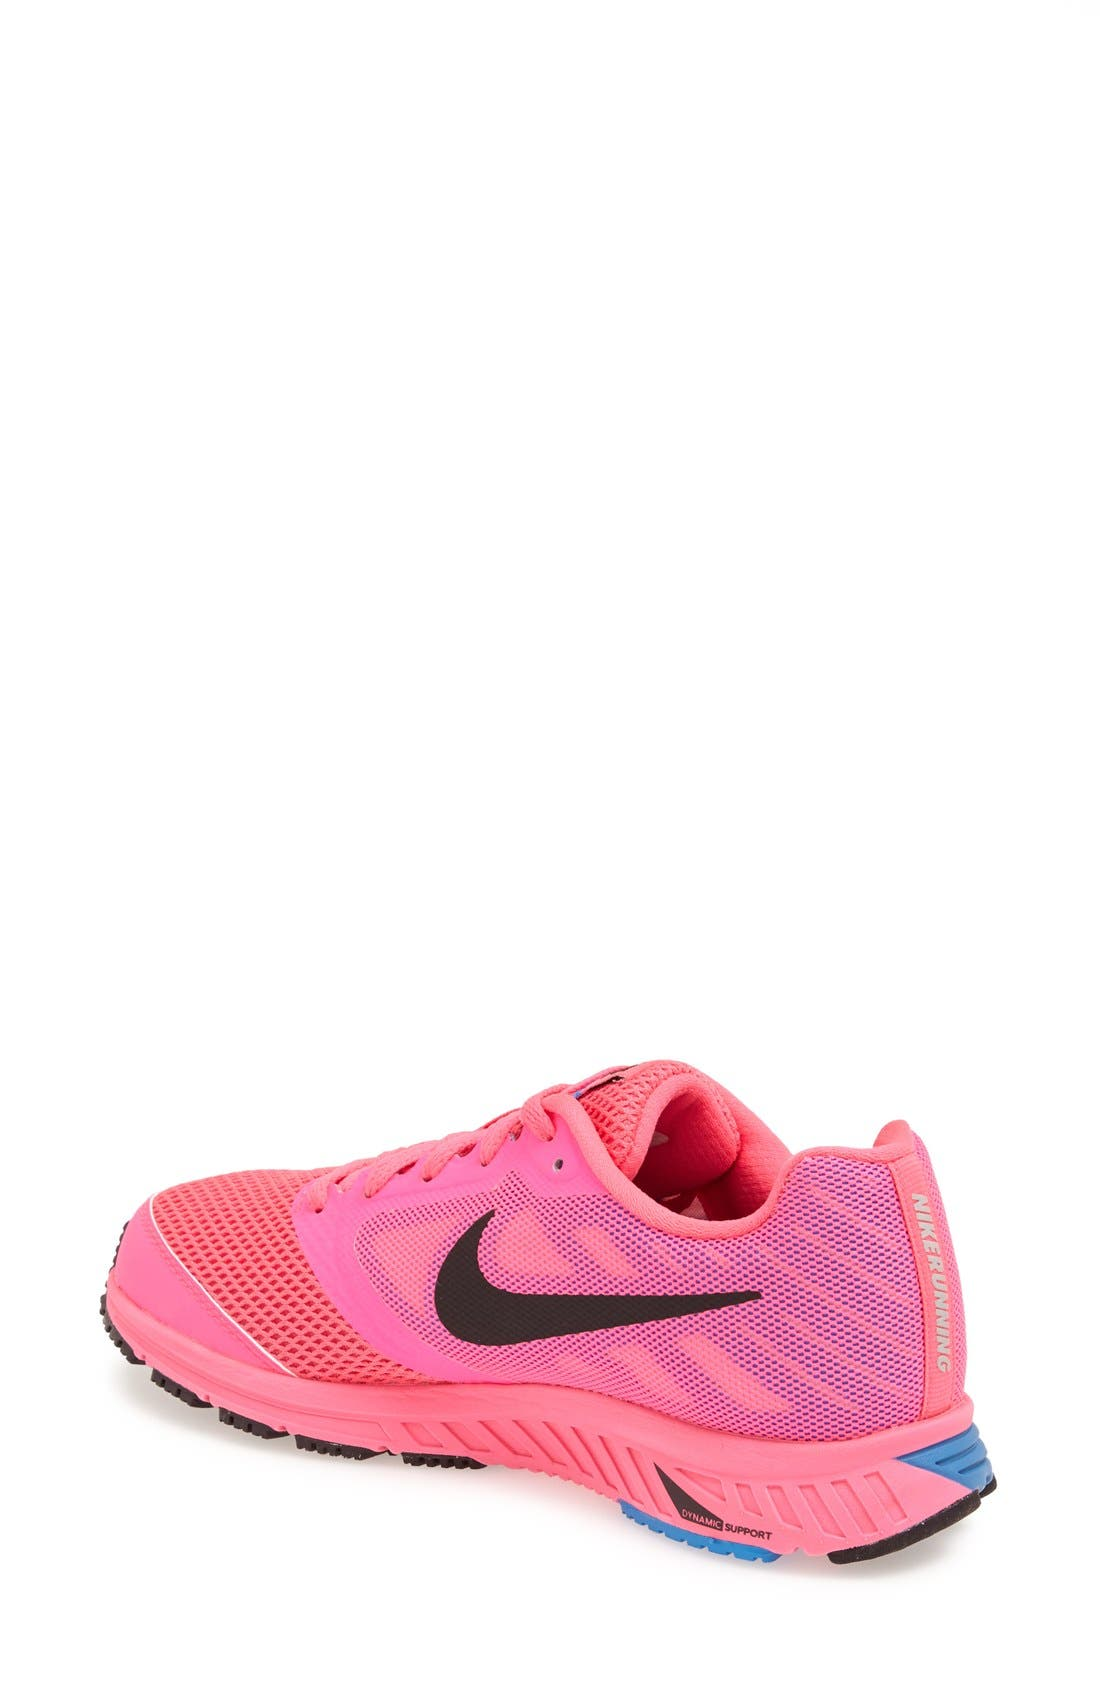 Alternate Image 2  - Nike 'Zoom Fly' Running Shoe (Women)